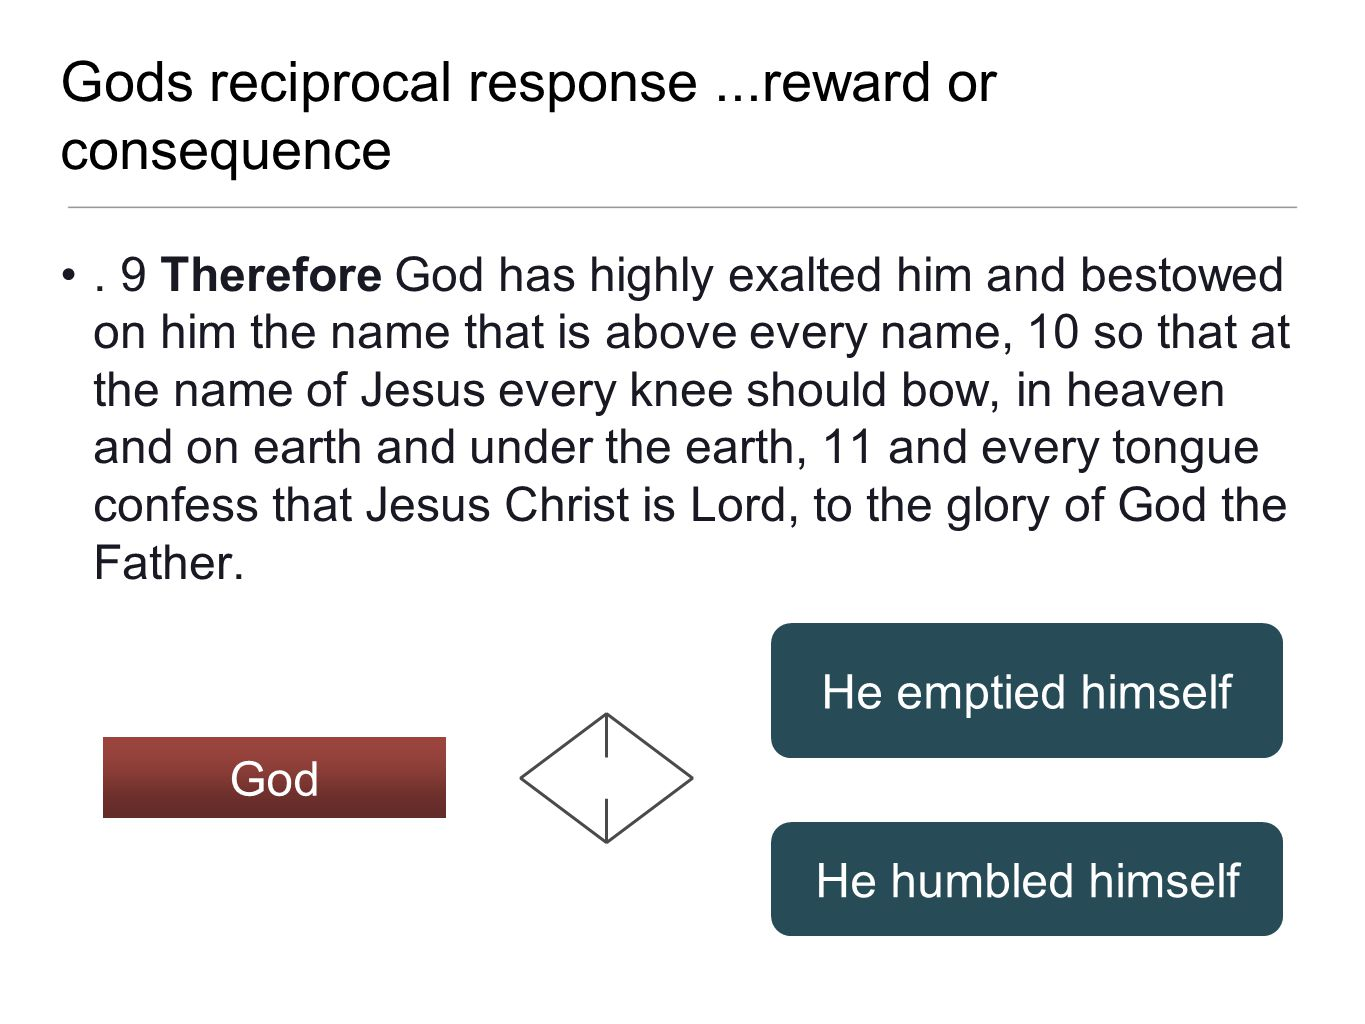 Gods reciprocal response...reward or consequence. 9 Therefore God has highly exalted him and bestowed on him the name that is above every name, 10 so